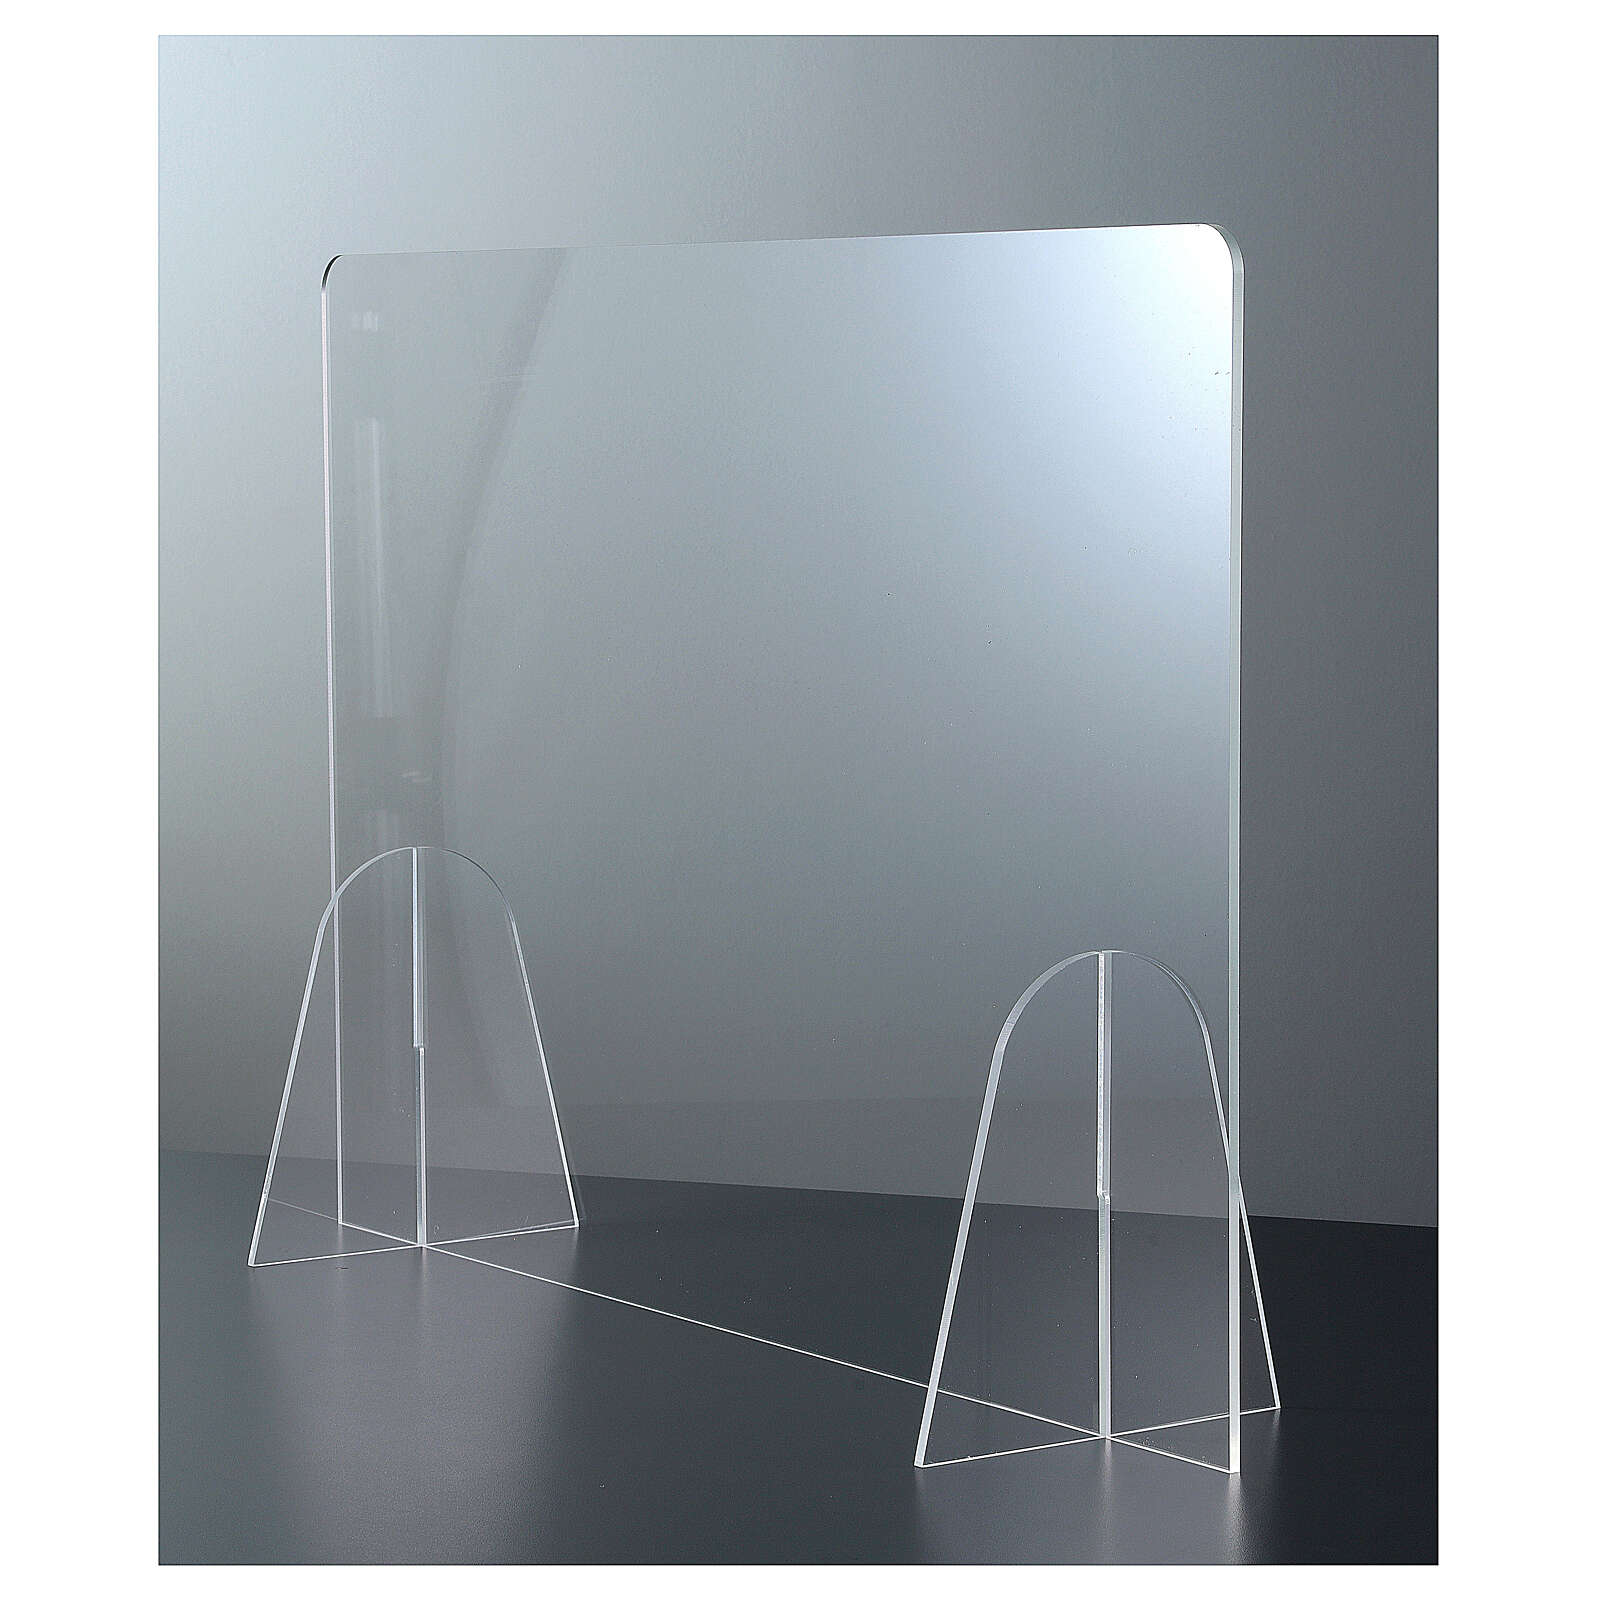 Plexiglass barrier shield- Goccia Design h 50x180 cm 3